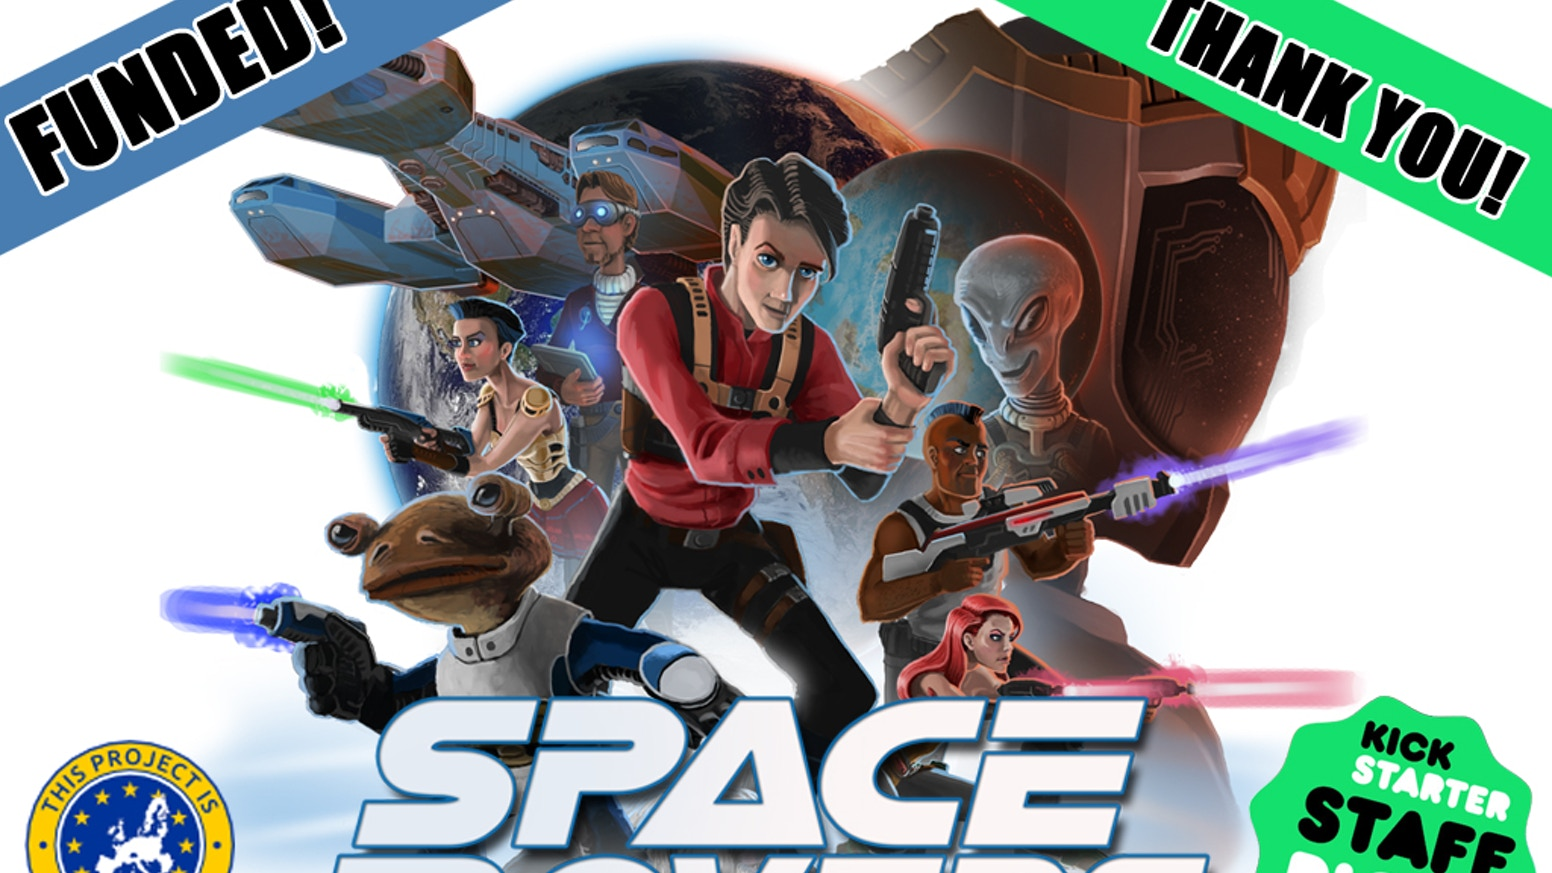 A cooperative Sci-Fi themed tabletop game for 2-7 players. Features an innovative way of rolling dice and comic book to set the tone.